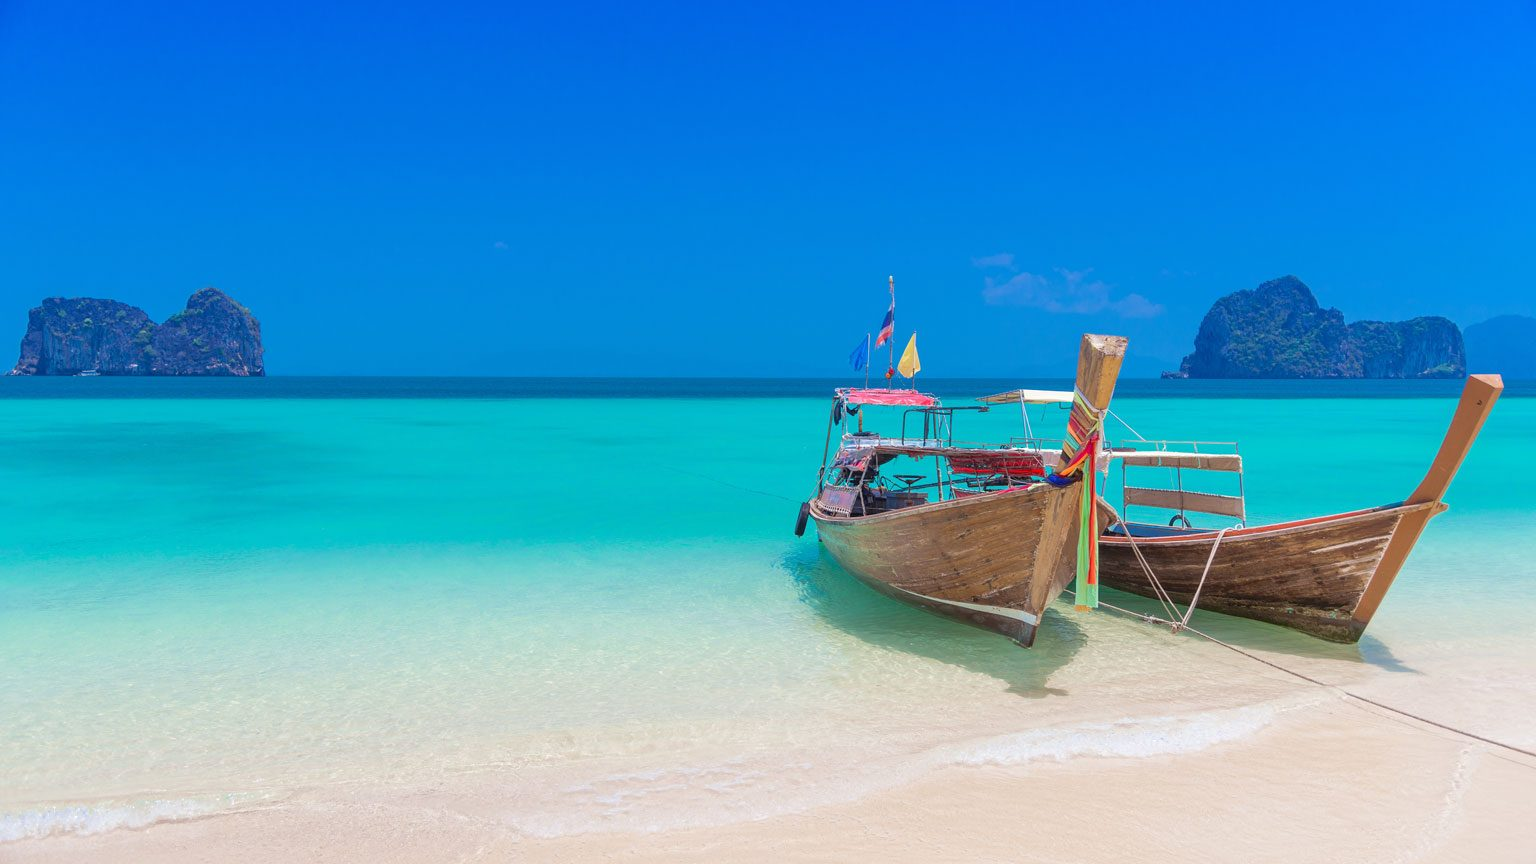 Two long tailed boats parking on the beautiful beach at Koh Hai, Trang province, Thailand.